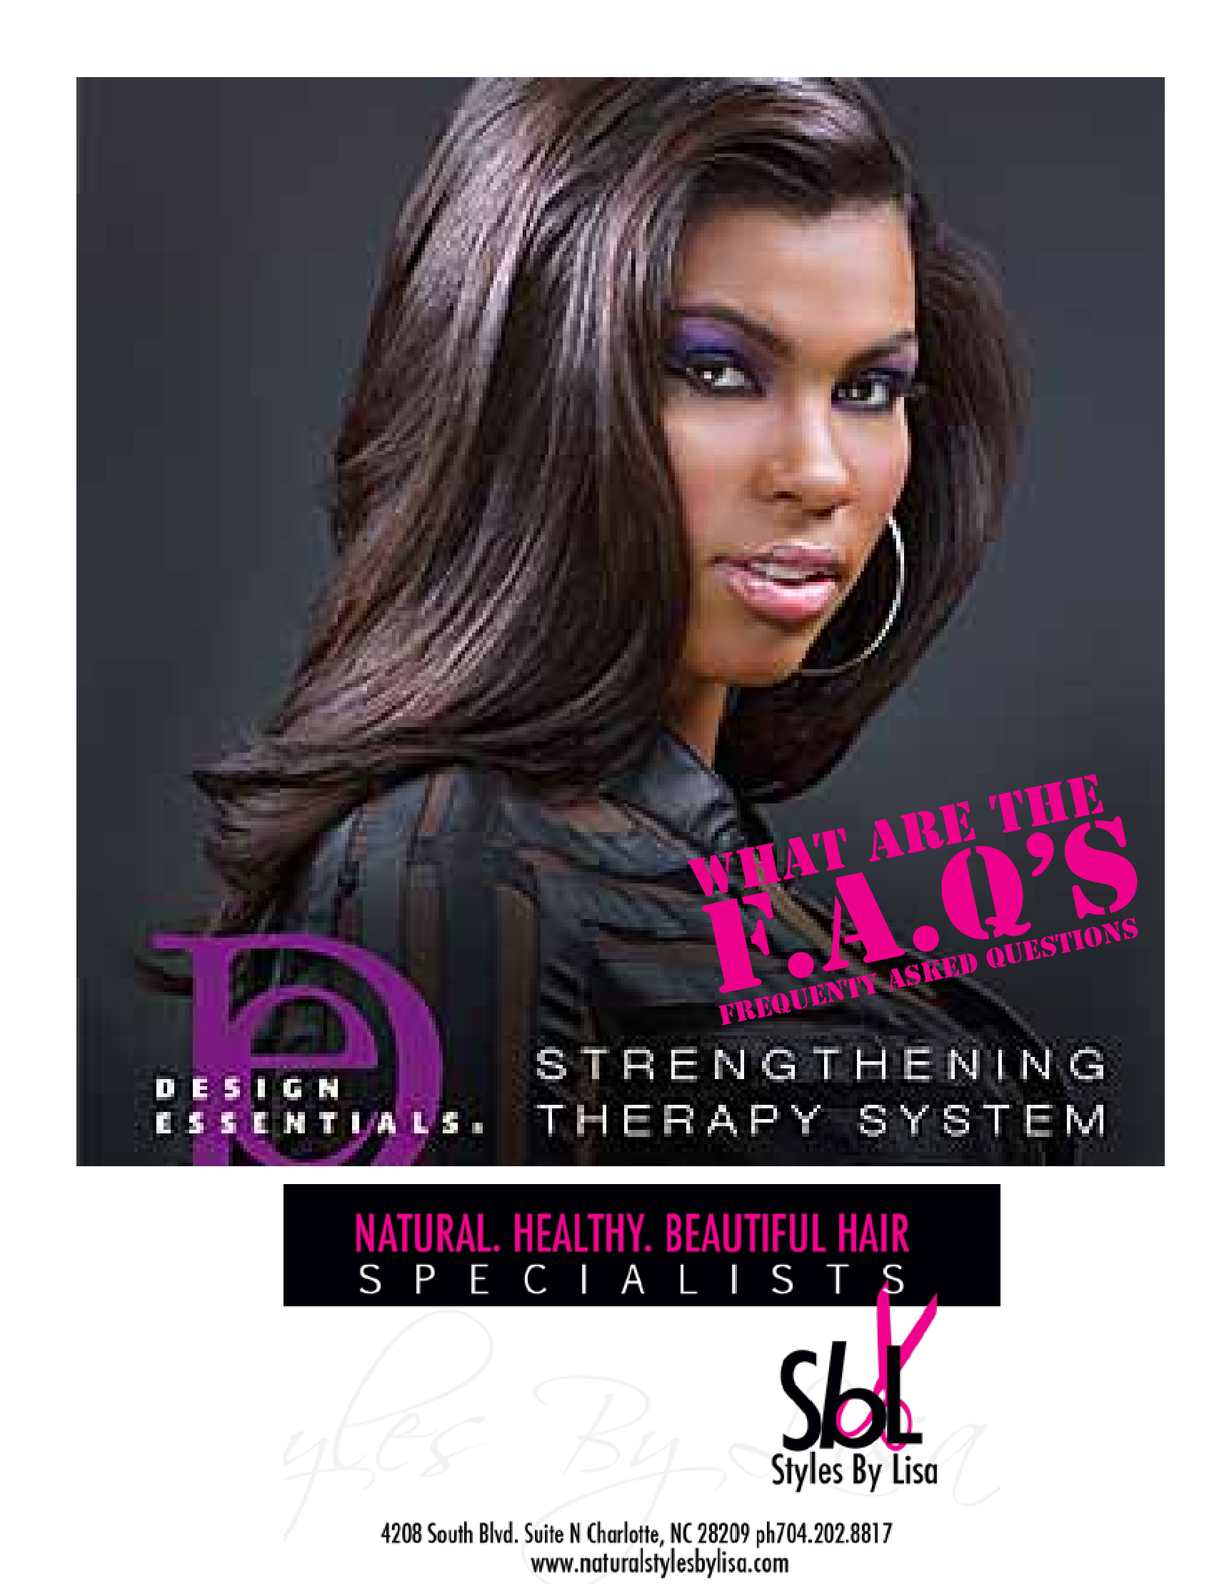 Calameo Styles By Lisa Design Essentials Sts Faq S